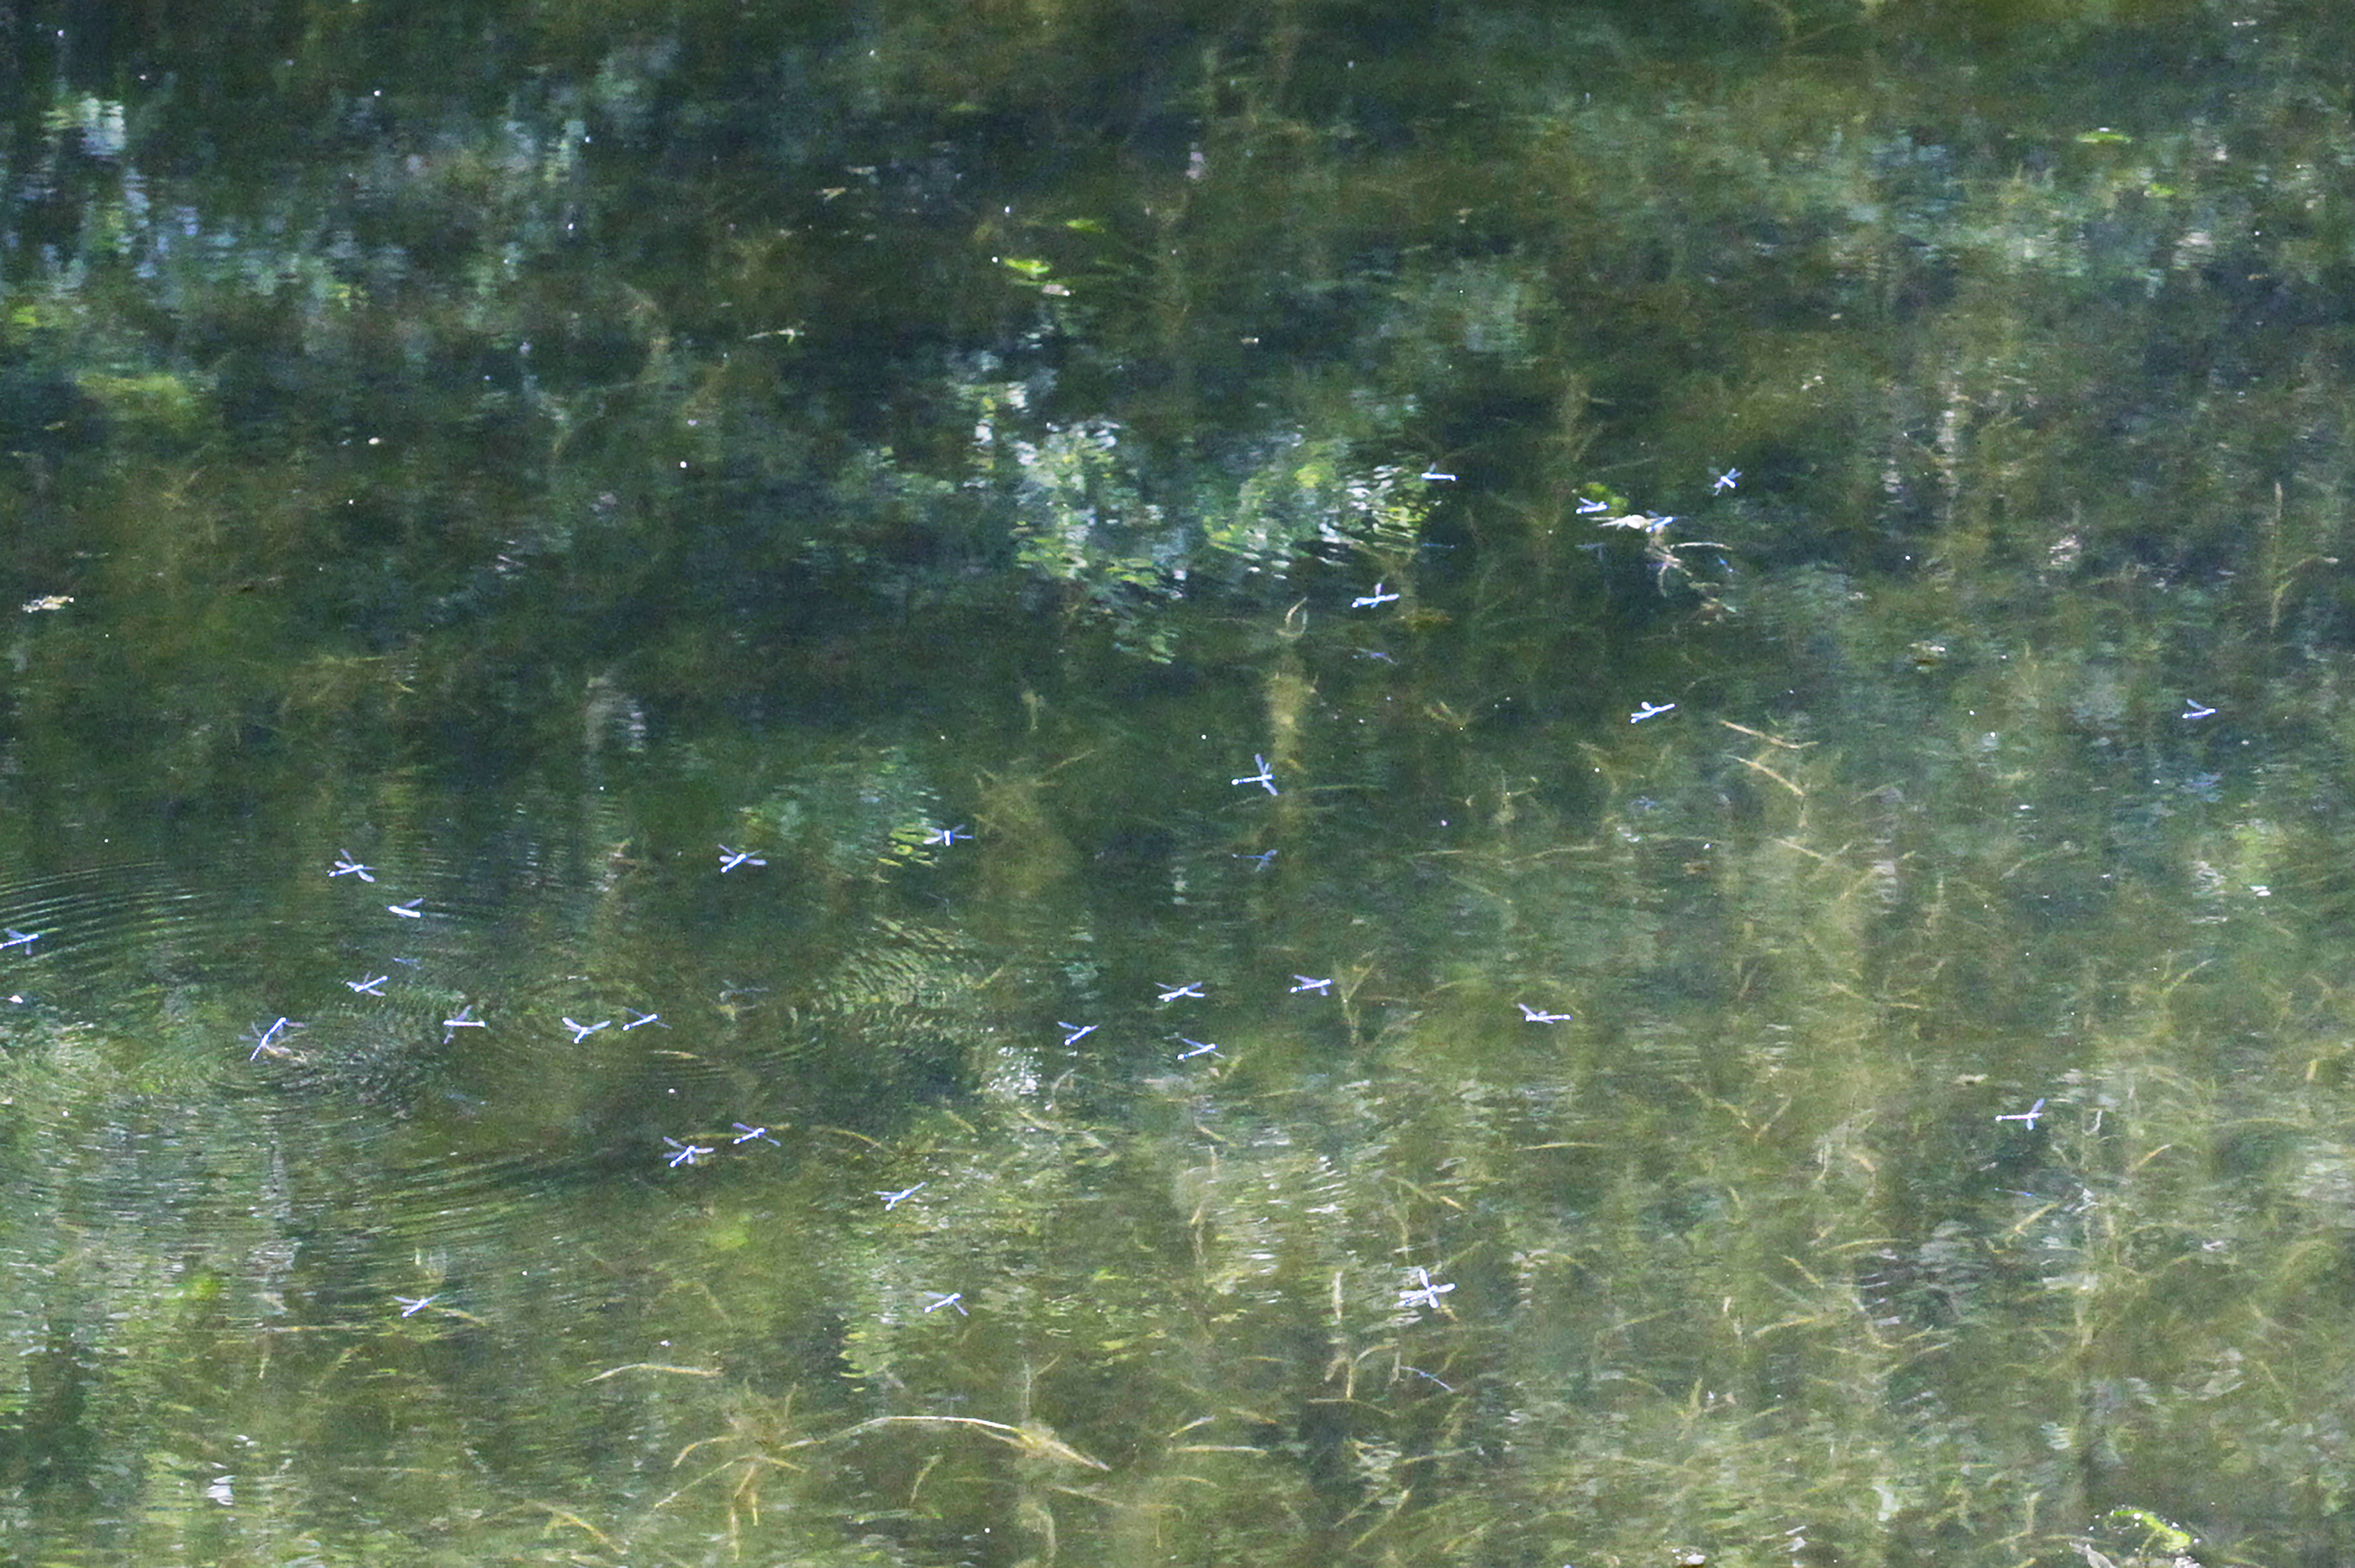 IMPRESSION, Dragonflies On Lake, Sierra National Forest, USA © 2016 Limited Edition Of 6 Giselle Print 150 X 100 Cm Hahnemühle Fine Art Baryta 325 Gr.